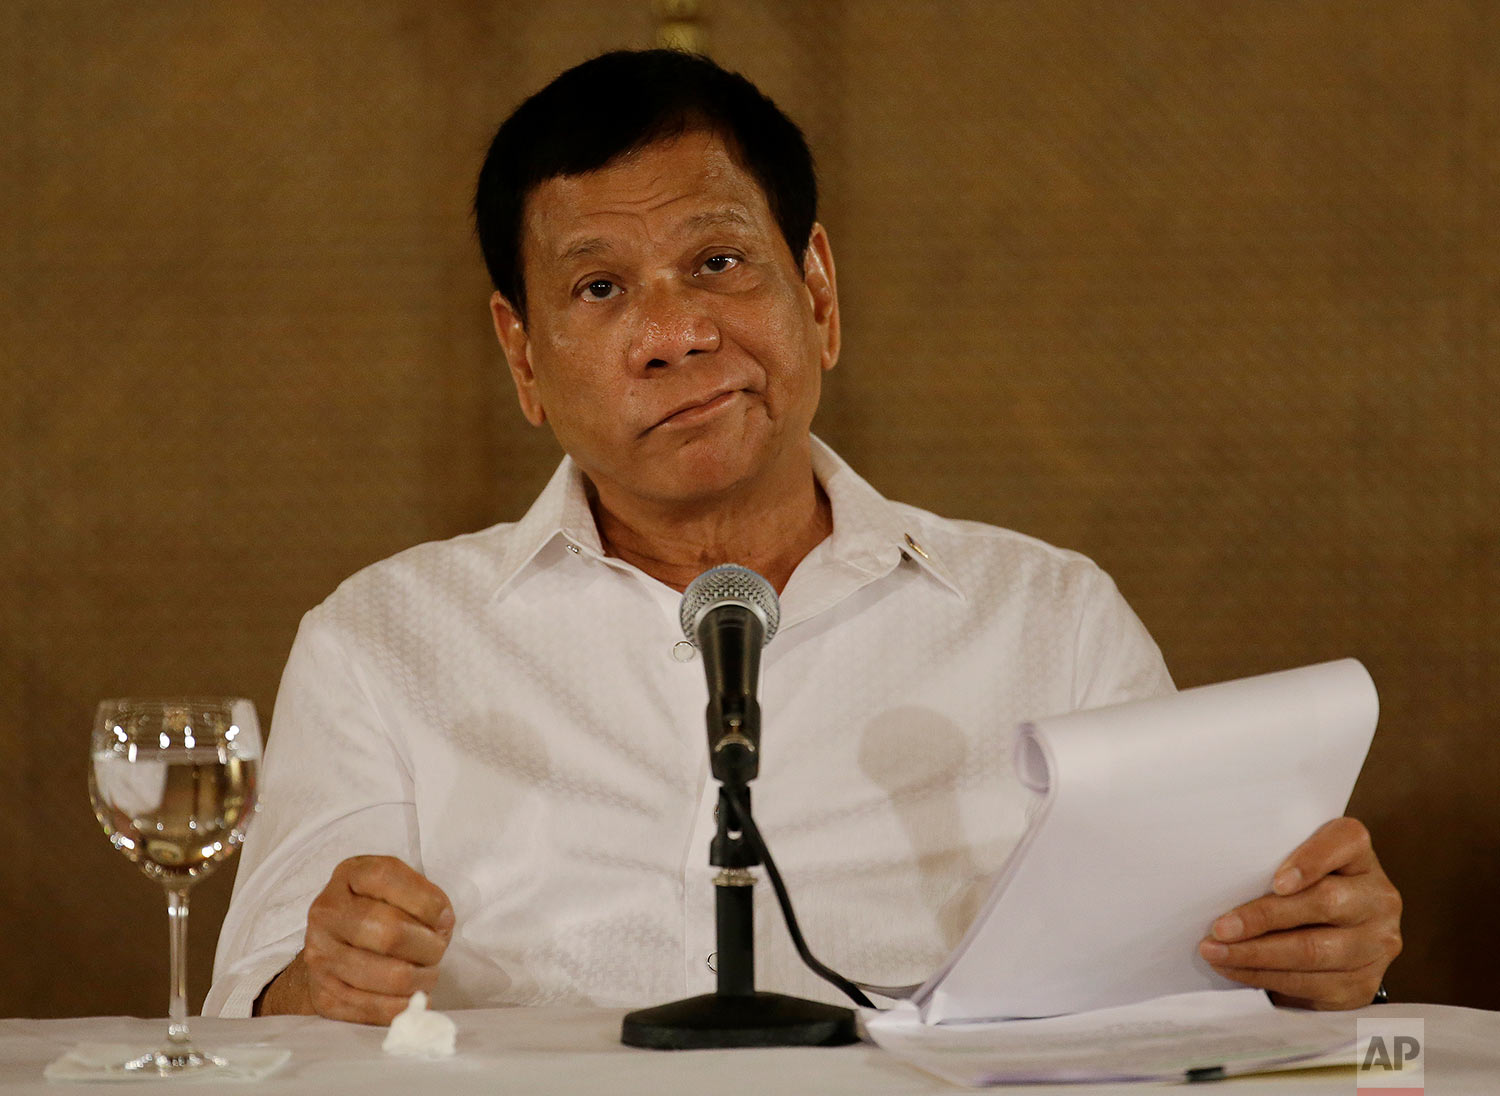 Philippine President Rodrigo Duterte reacts during a press conference at the Malacanang presidential palace in Manila, Philippines on Monday, March 13, 2017. The Philippine president has ordered the military to assert his country's ownership of a vast offshore region off its northeastern coast where Chinese survey ships have been sighted last year and alarmed defense officials. (AP Photo/Aaron Favila)